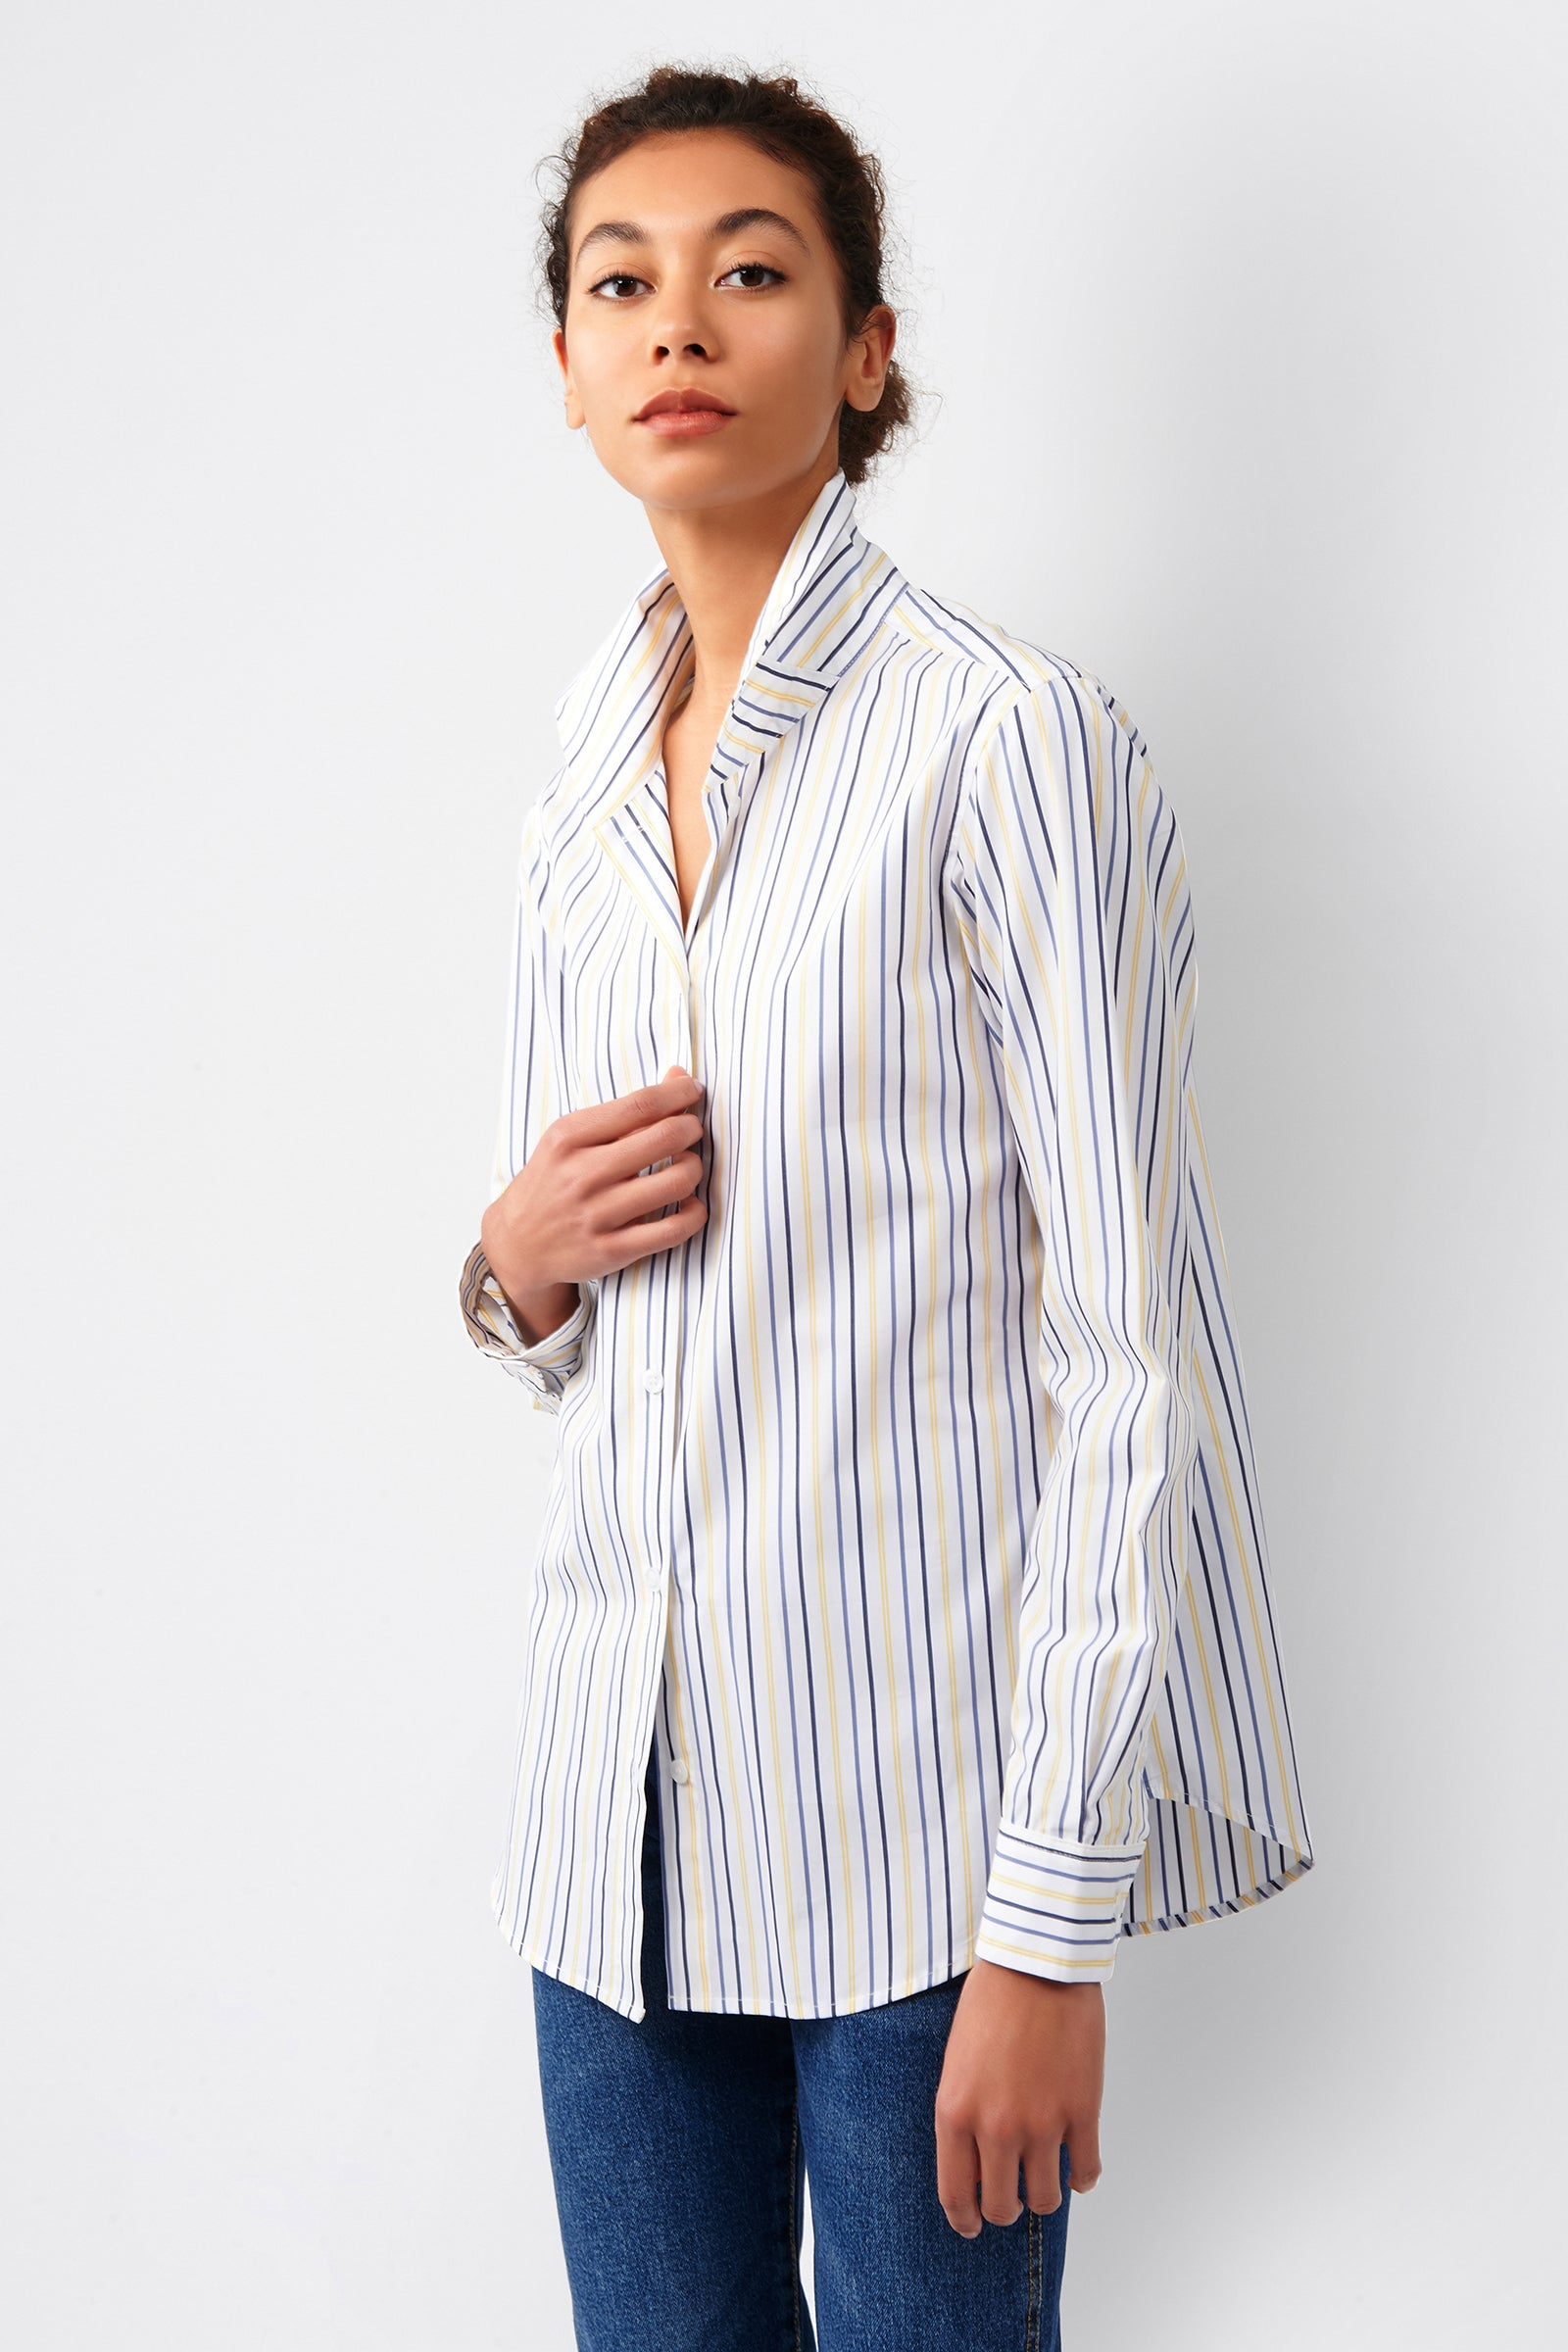 Kal Rieman Ginna Box Pleat Shirt in Yellow Multi Stripe on Model Front Side View